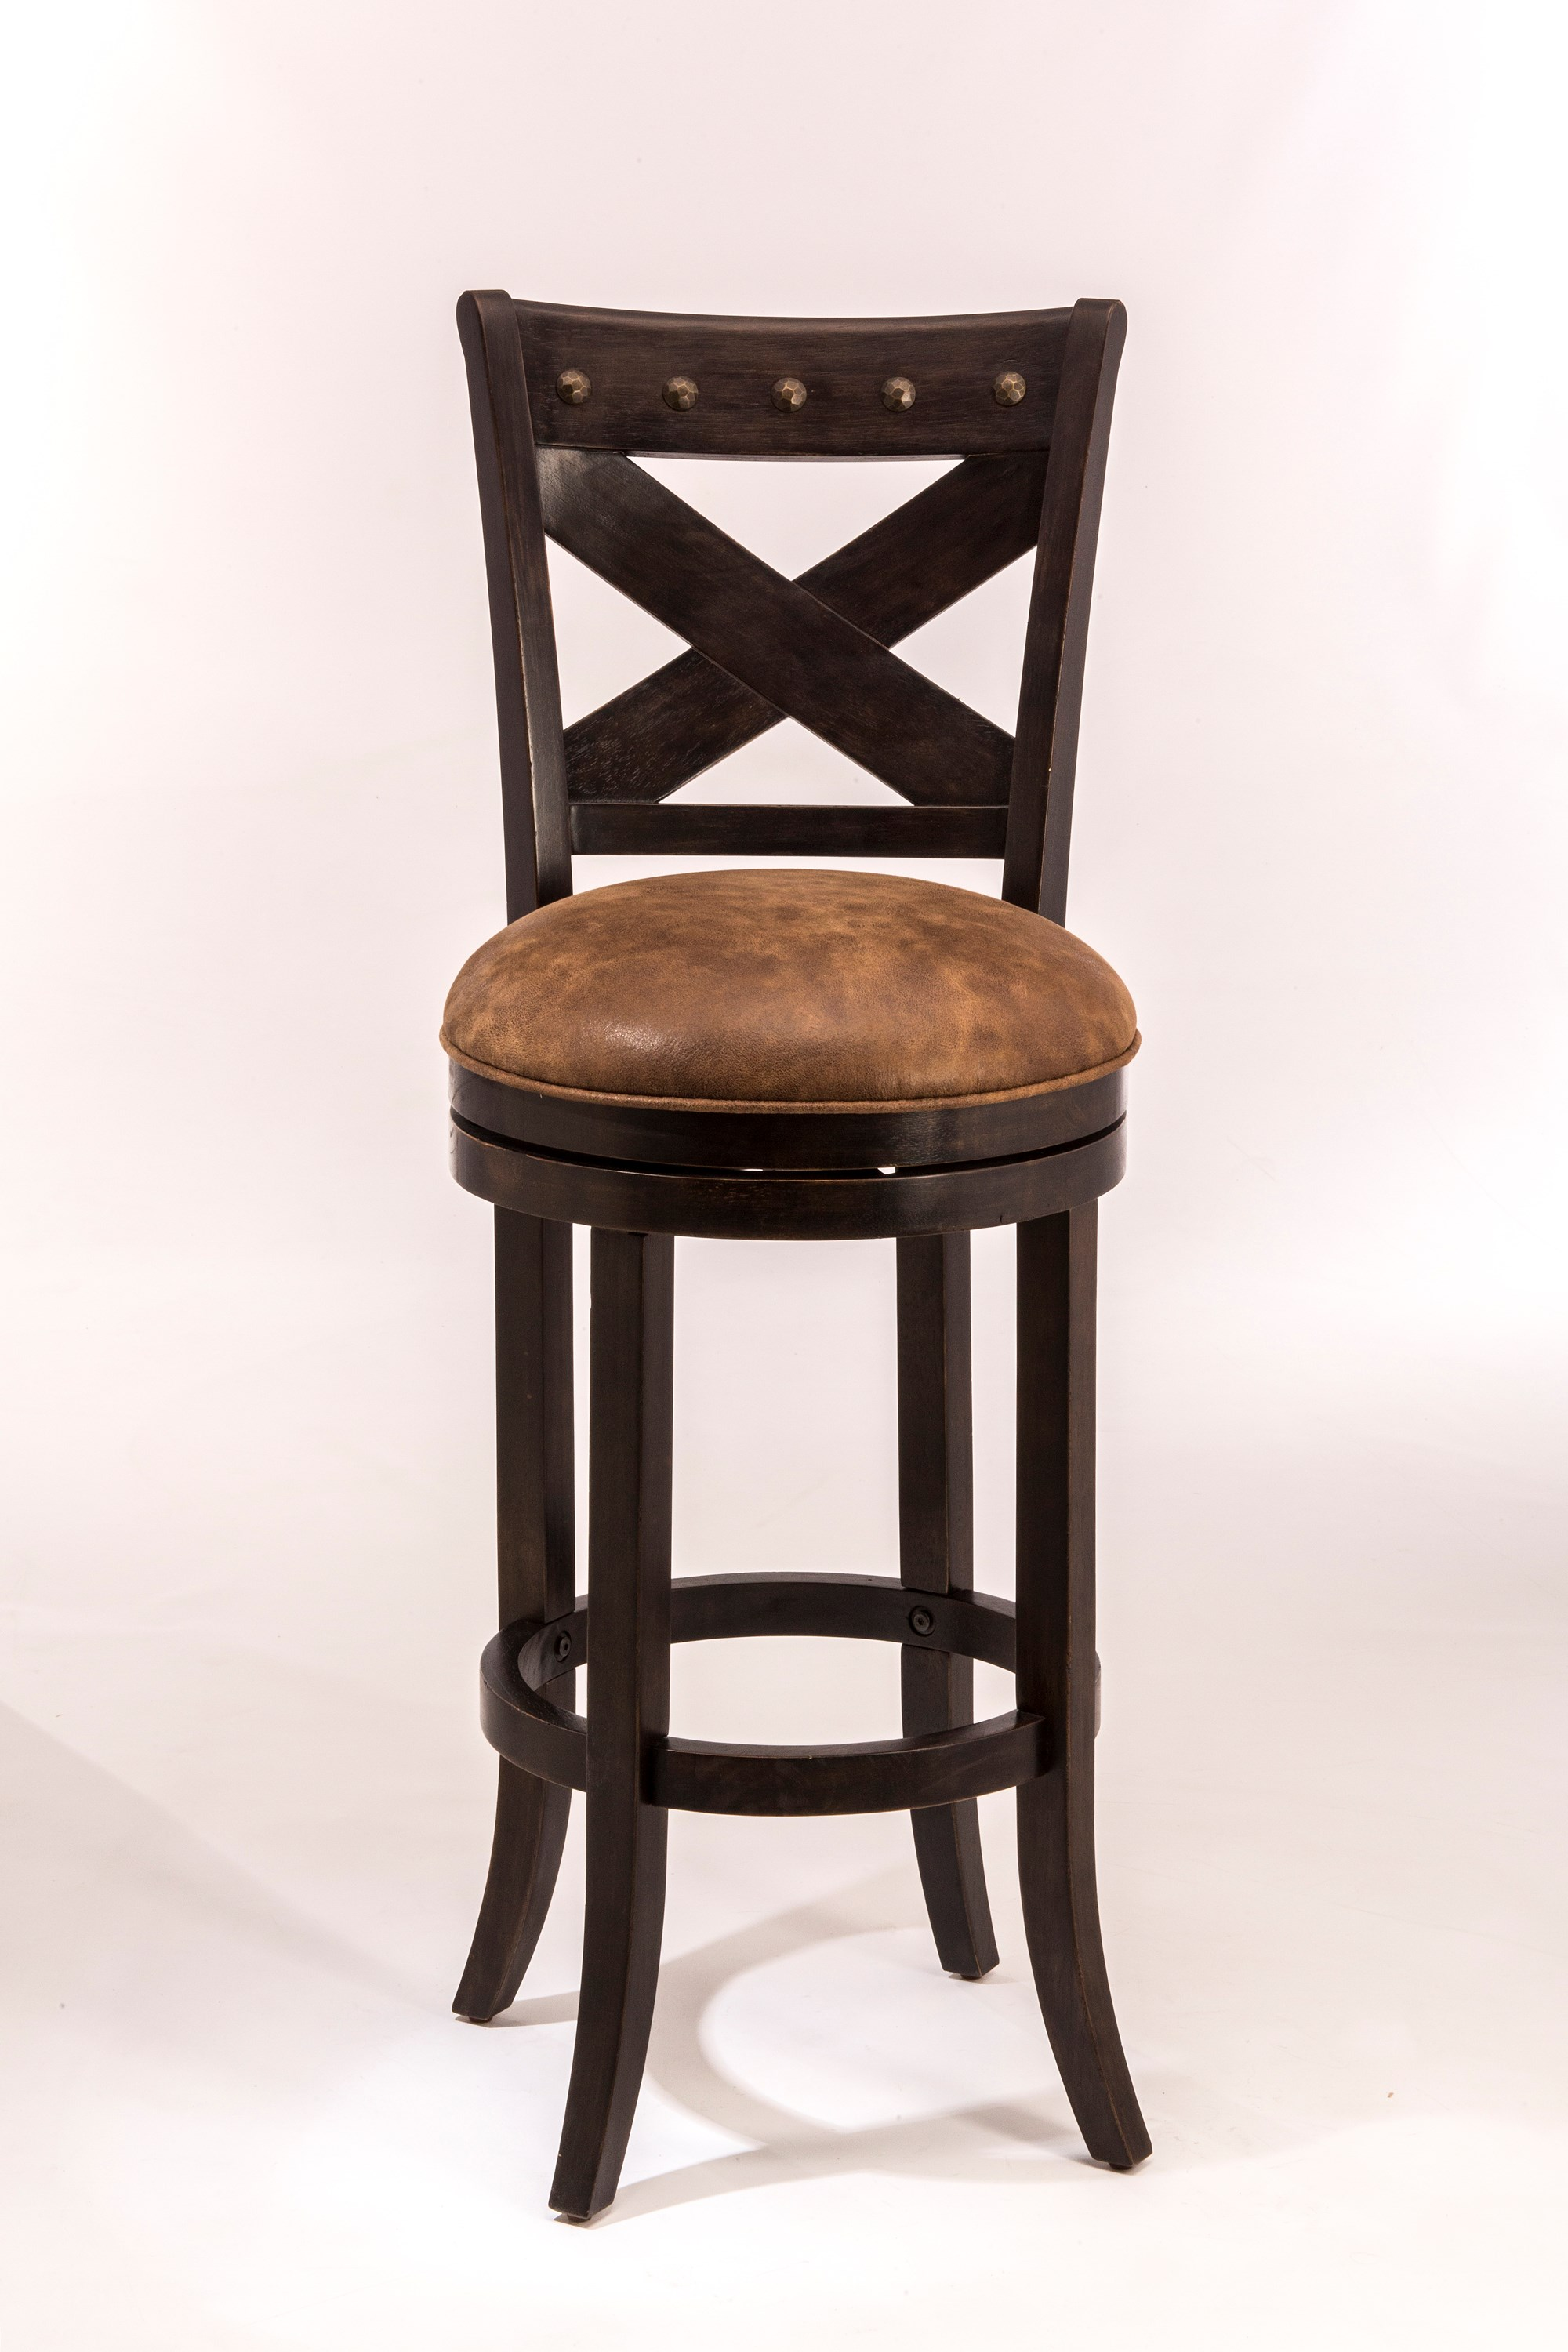 Hillsdale Wood Stools Swivel Counter Height Stool With X